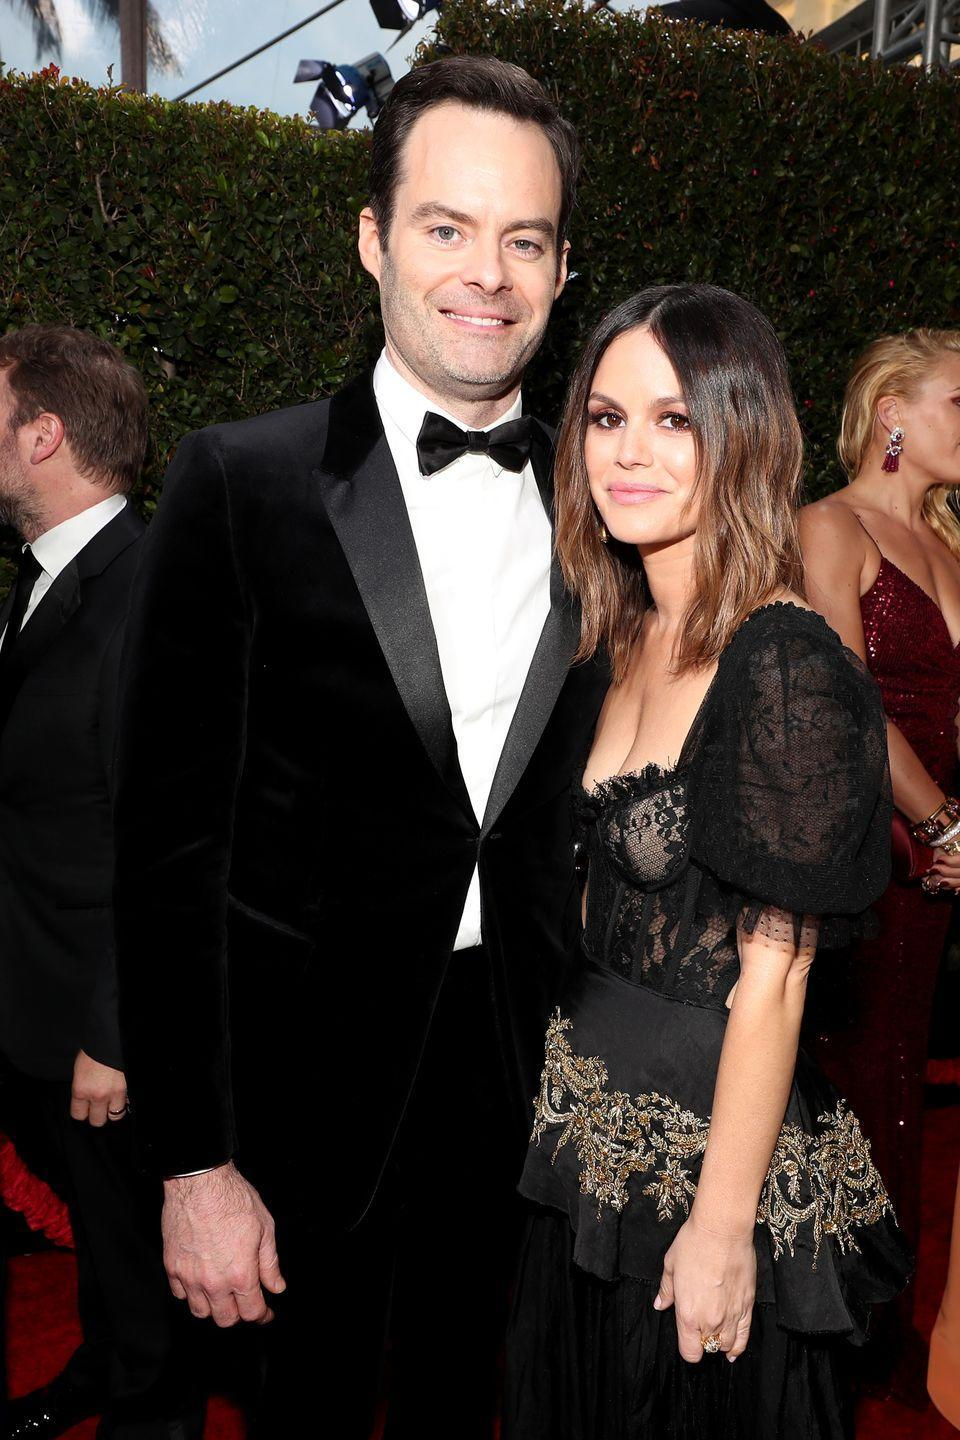 "<p>Rachel and Bill shocked everyone when they attended this year's Golden Globe Awards together and confirmed their relationship, but the pair wasn't meant to last—six months later, <a href=""https://people.com/tv/bill-hader-and-rachel-bilson-split-source/"" rel=""nofollow noopener"" target=""_blank"" data-ylk=""slk:People"" class=""link rapid-noclick-resp""><em>People</em> </a>confirmed they ""amicably split."" Ho hum.</p>"